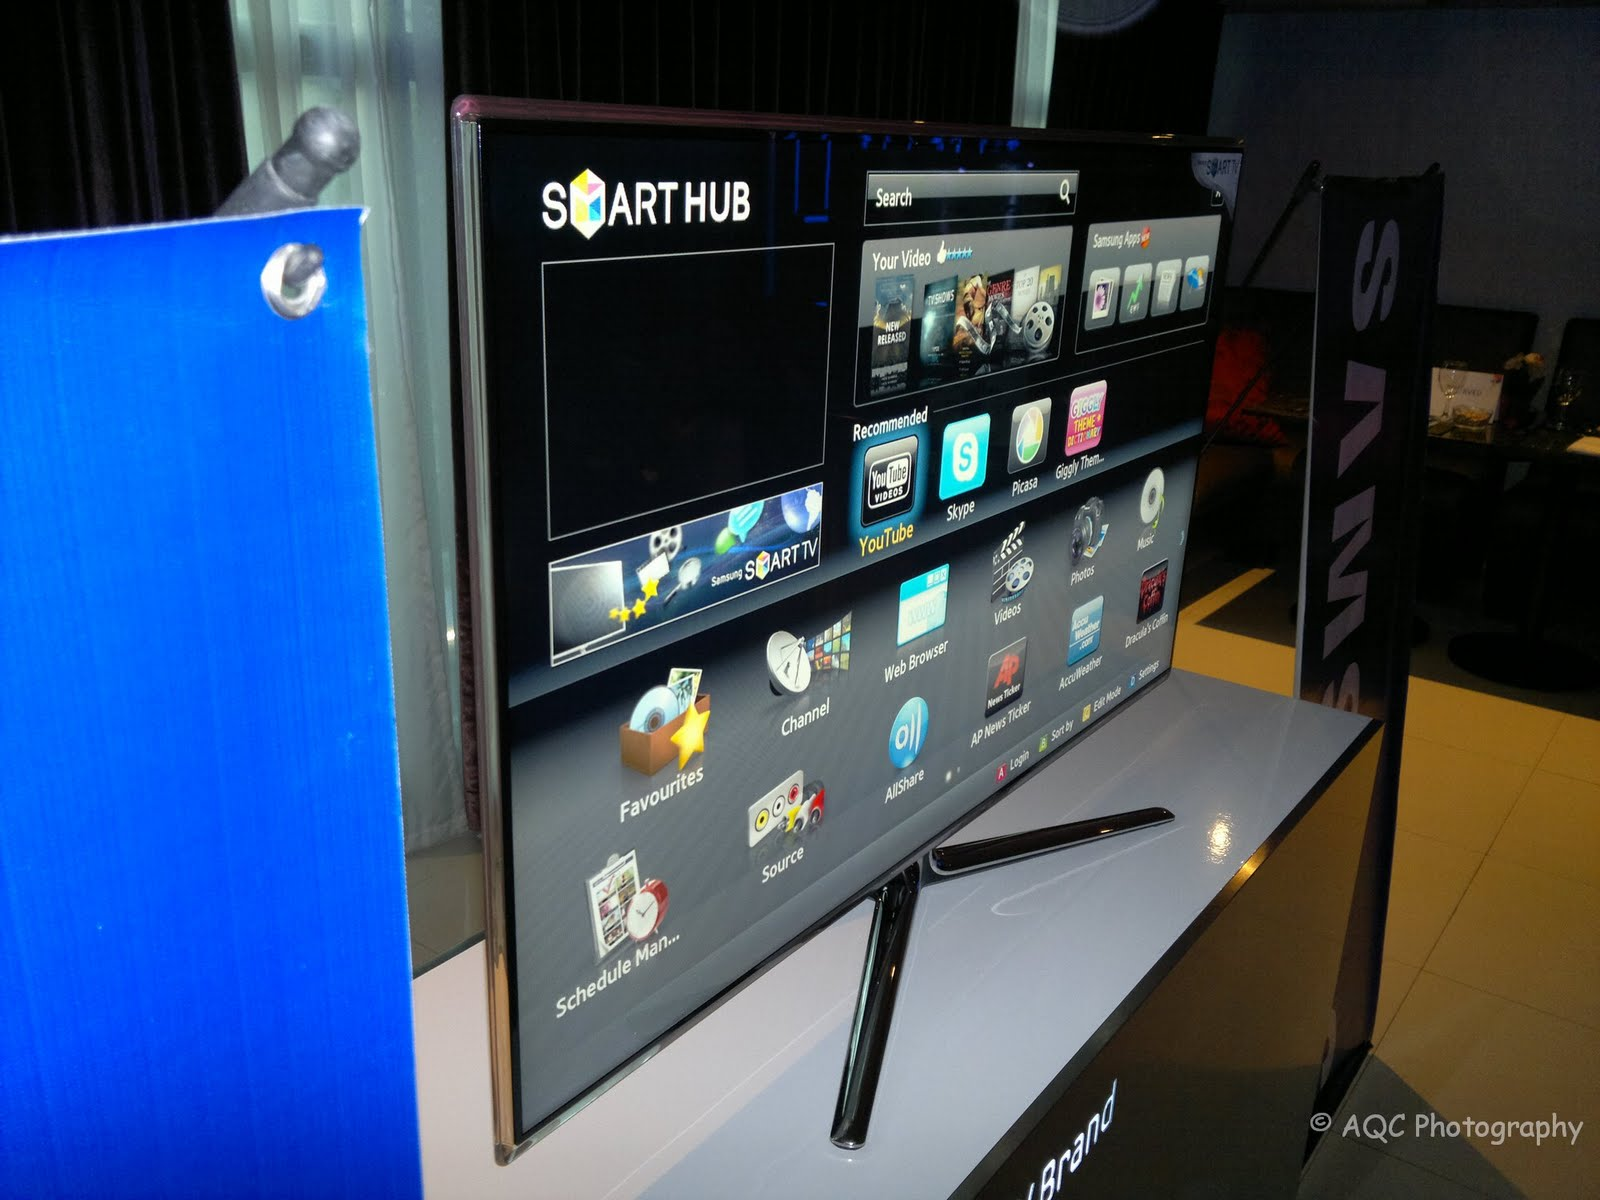 Samsung Smart TV Launched - Internet TV with App Store ~ Cheftonio's